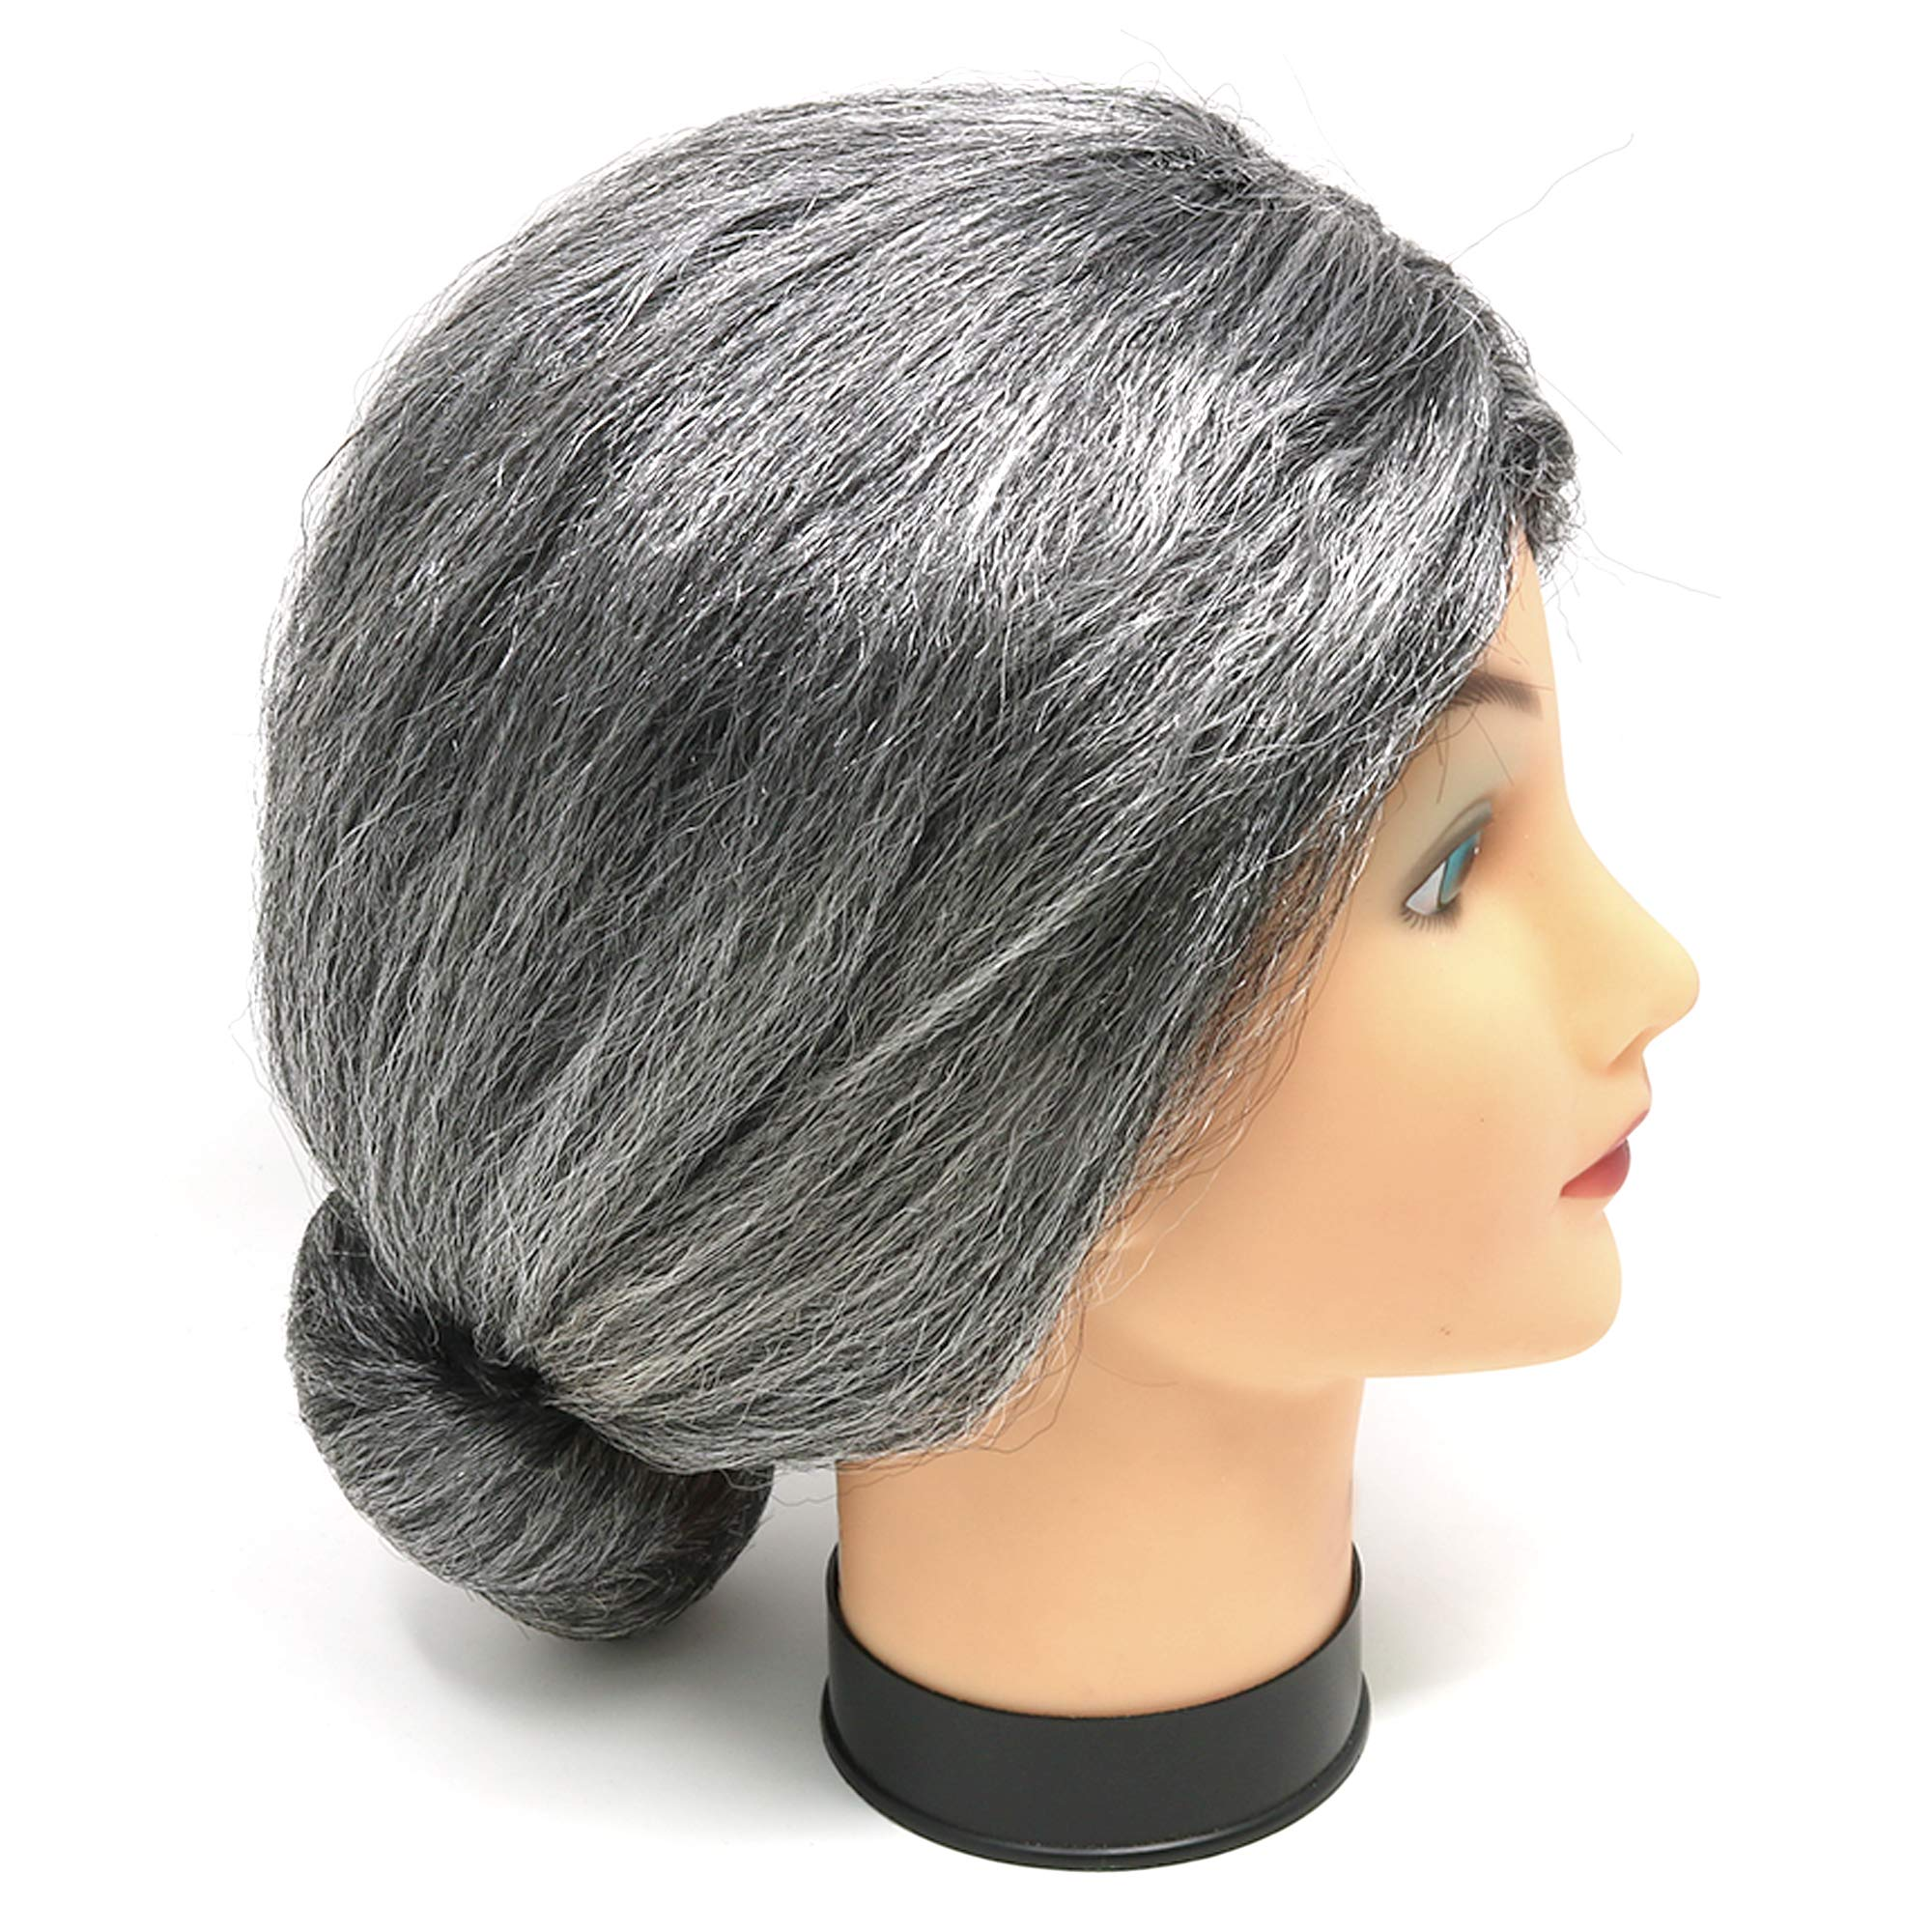 Skeleteen Old Lady Costume Wig - Silver Granny Bun Wig Costume Accessories  - 1 Piece fcaa4f2ecb